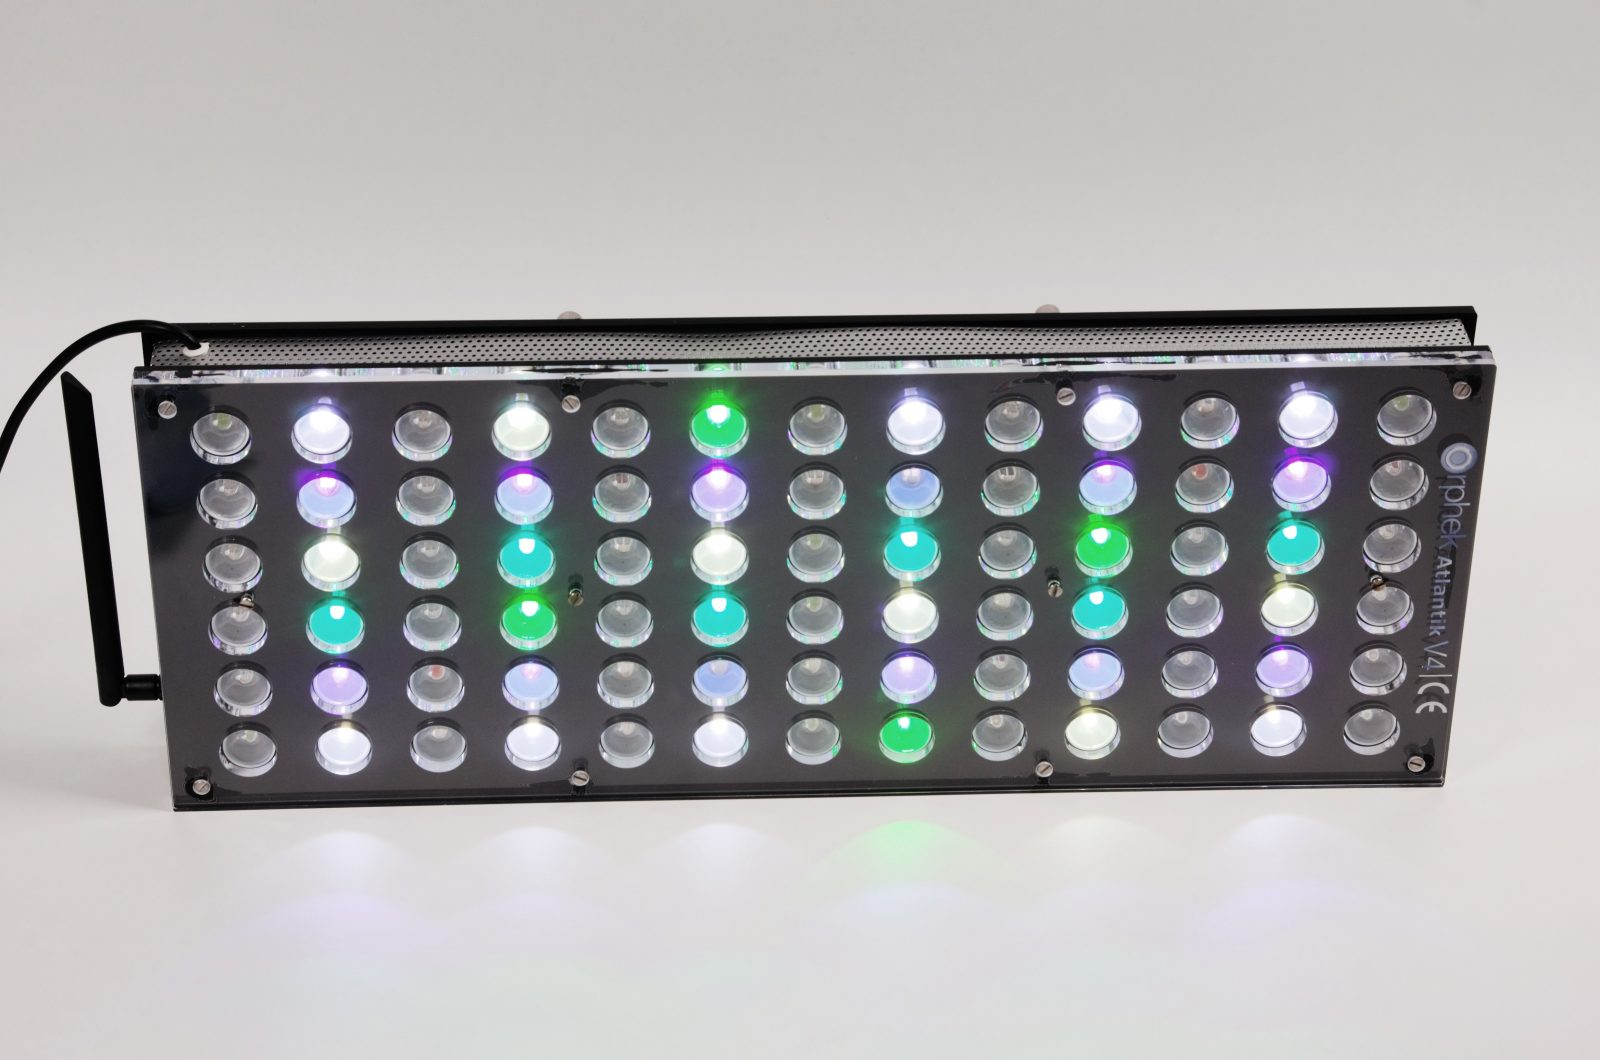 Orphek-Aquarium-LED-Lighting-Reef-Atlantik-V4-אור בערוץ 1 + 3